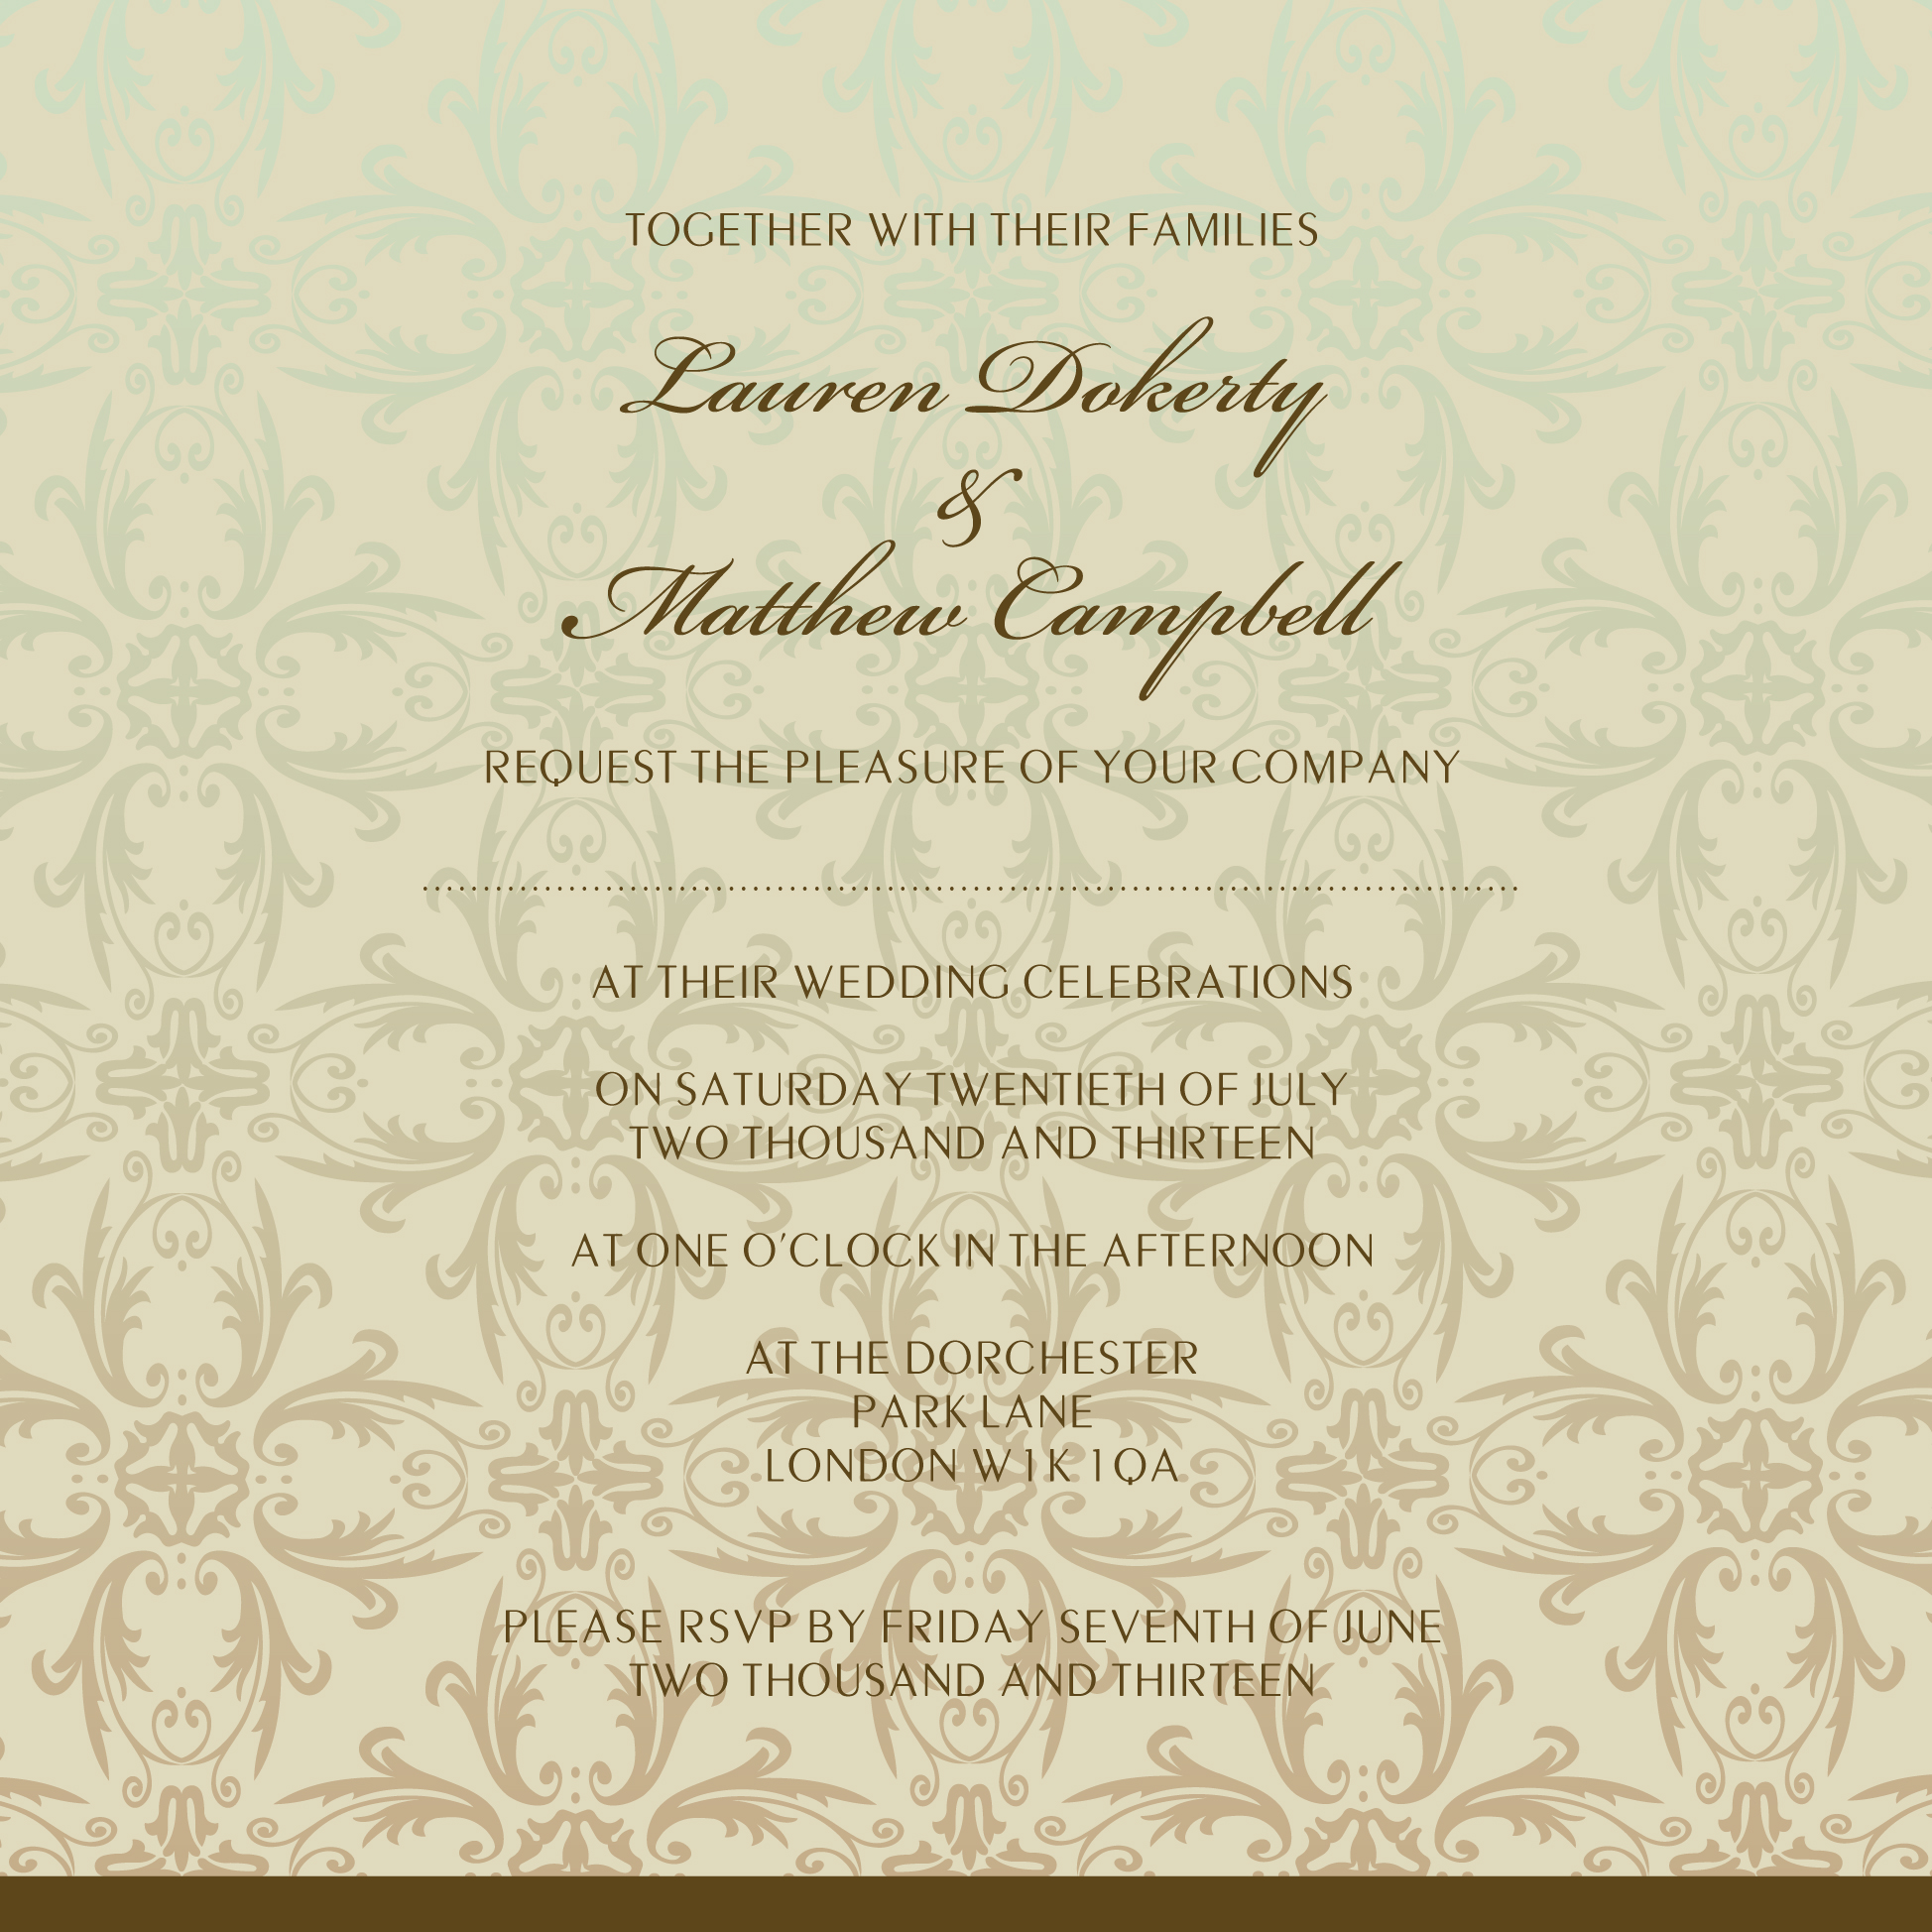 Ombré shaded green and brown wedding invitation